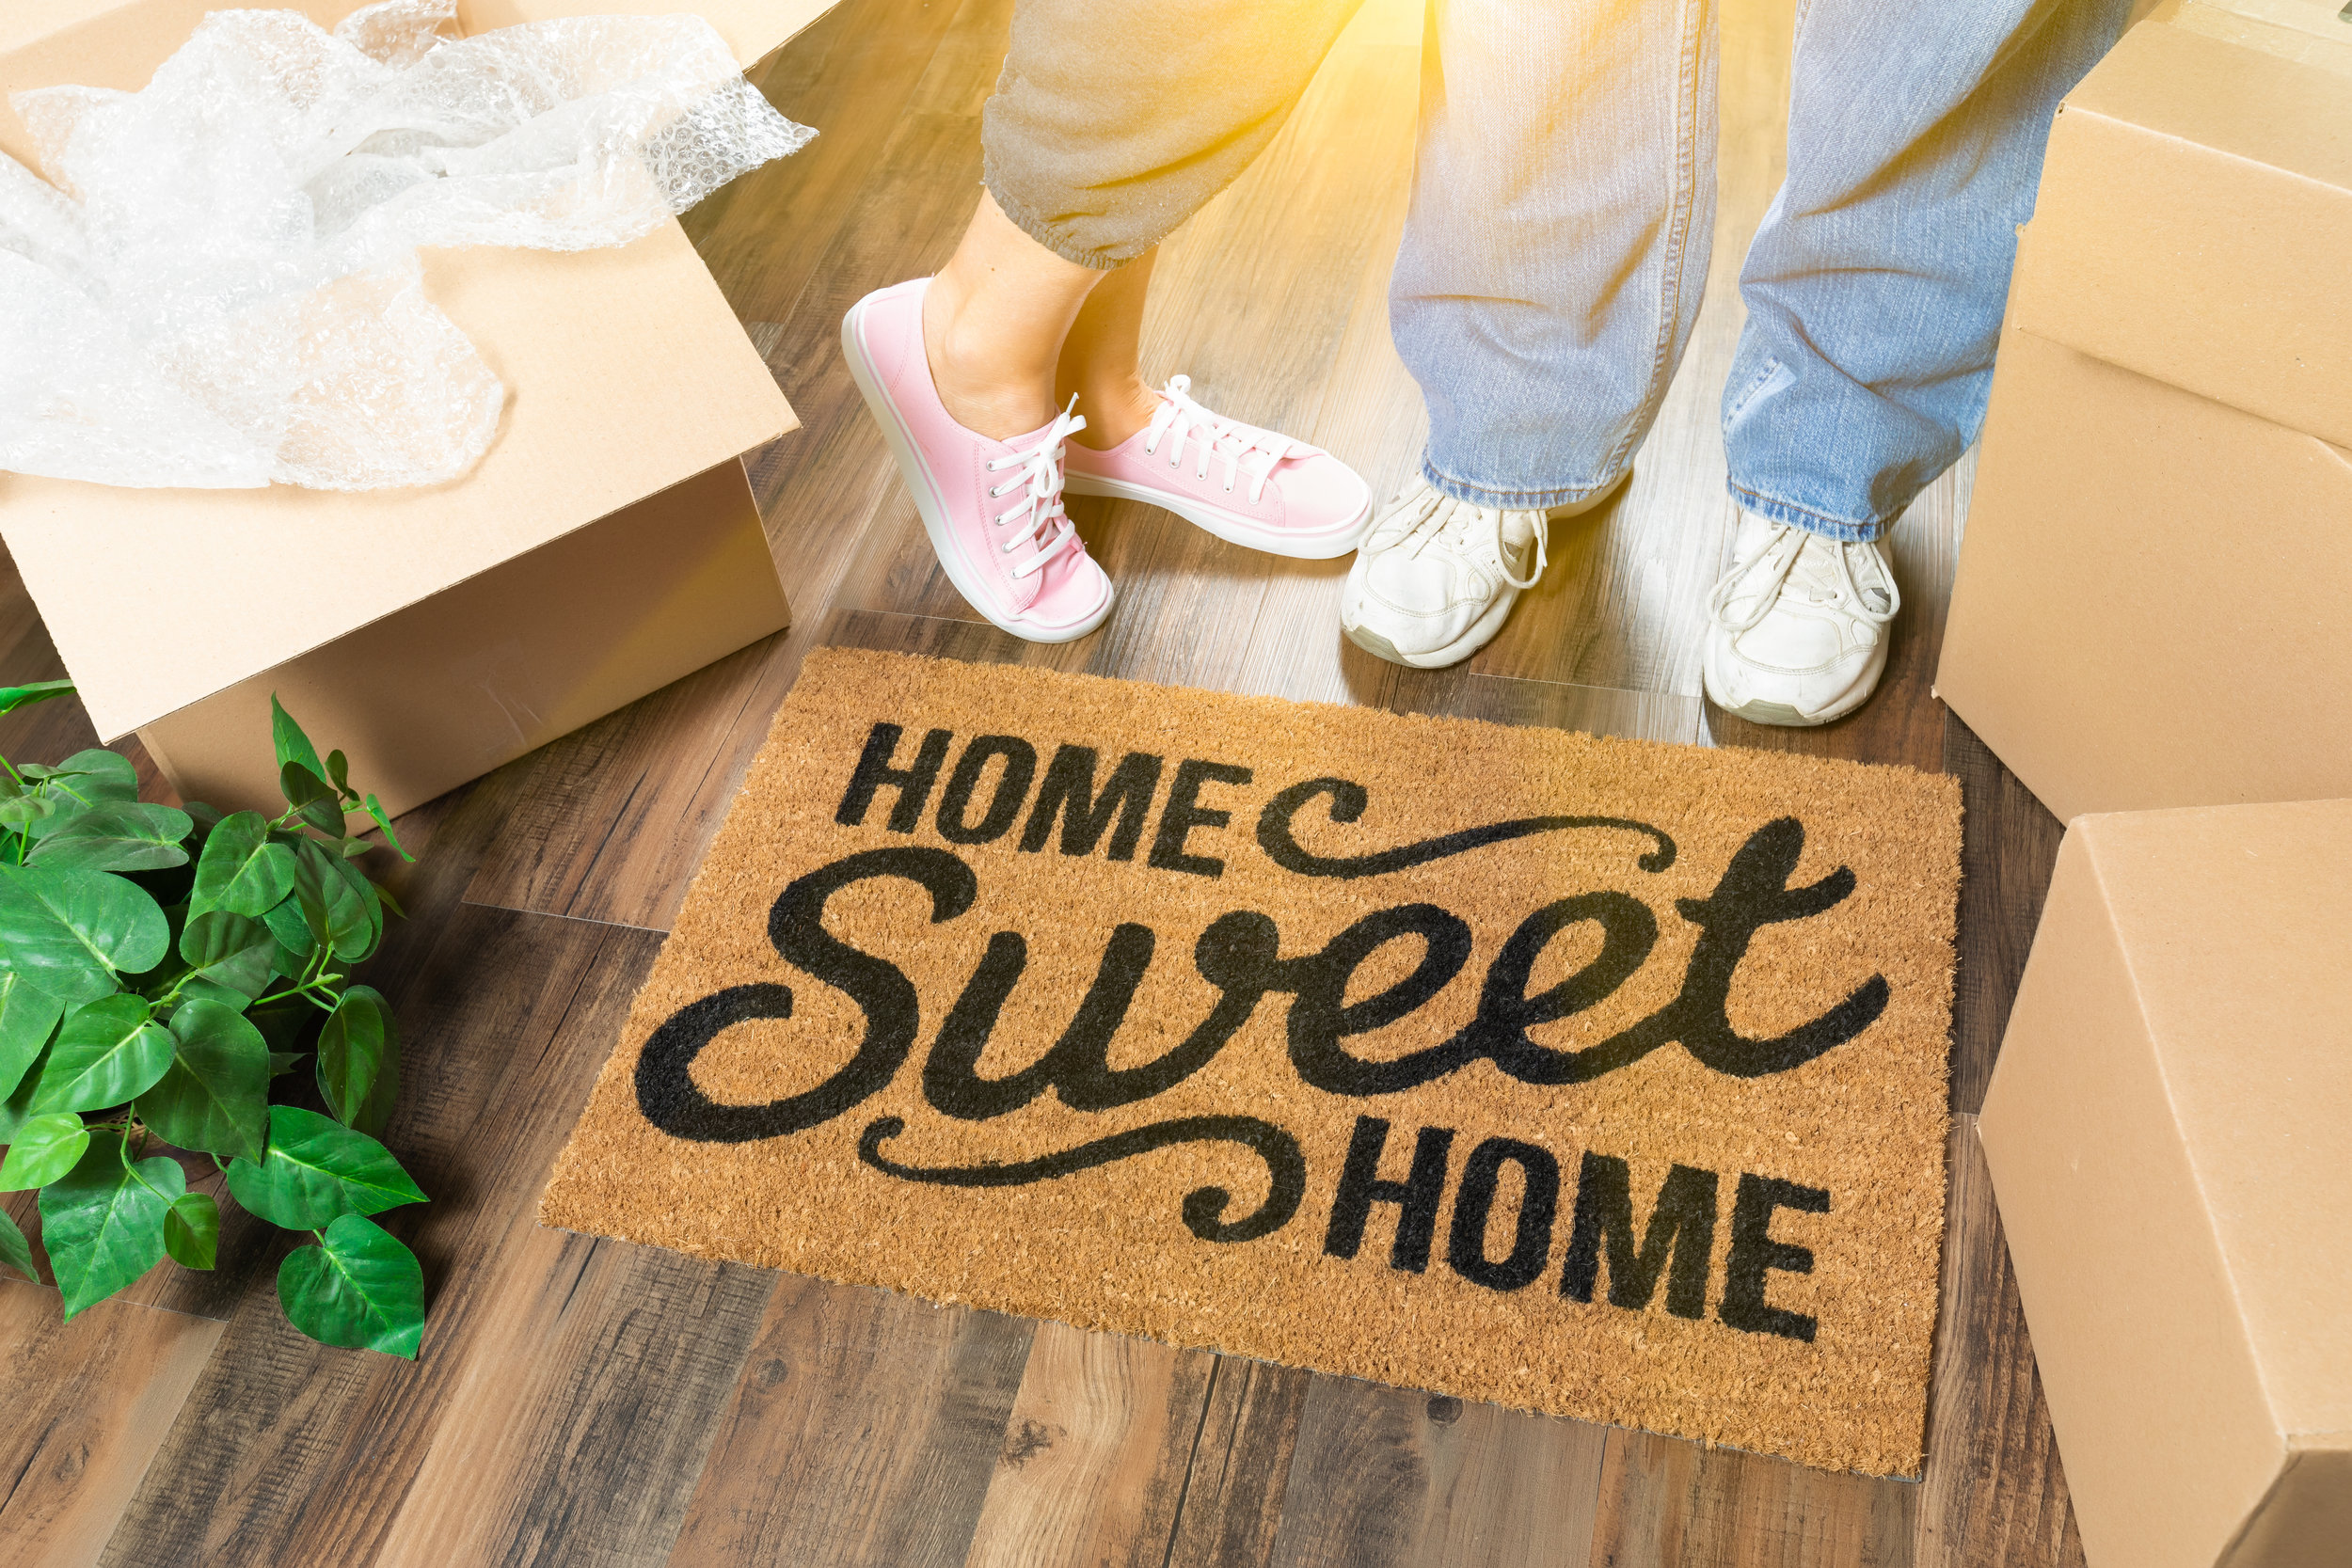 Moving into a new home is one of the most exciting times of your family's life. It can also be stressful at times! - Five Star Greenville is here to help make things a little easier. We are happy to help you with any heating and air, plumbing, electrical, insulation, and indoor air quality needs for your home.